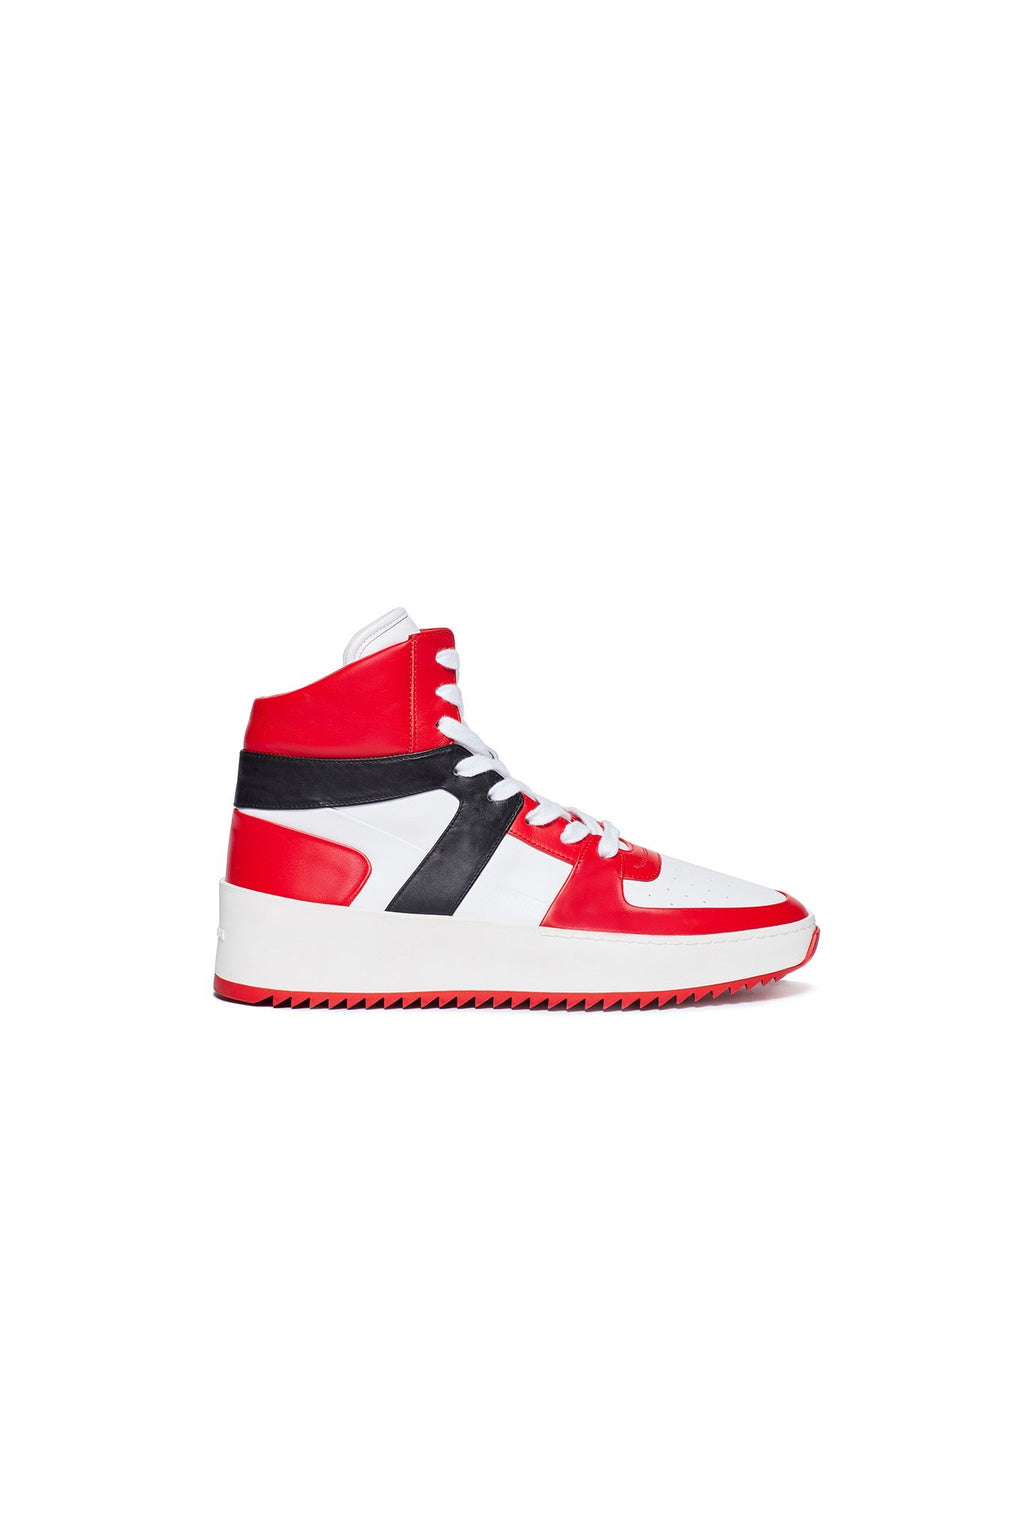 Varsity Red / White / Black Basketball Sneaker